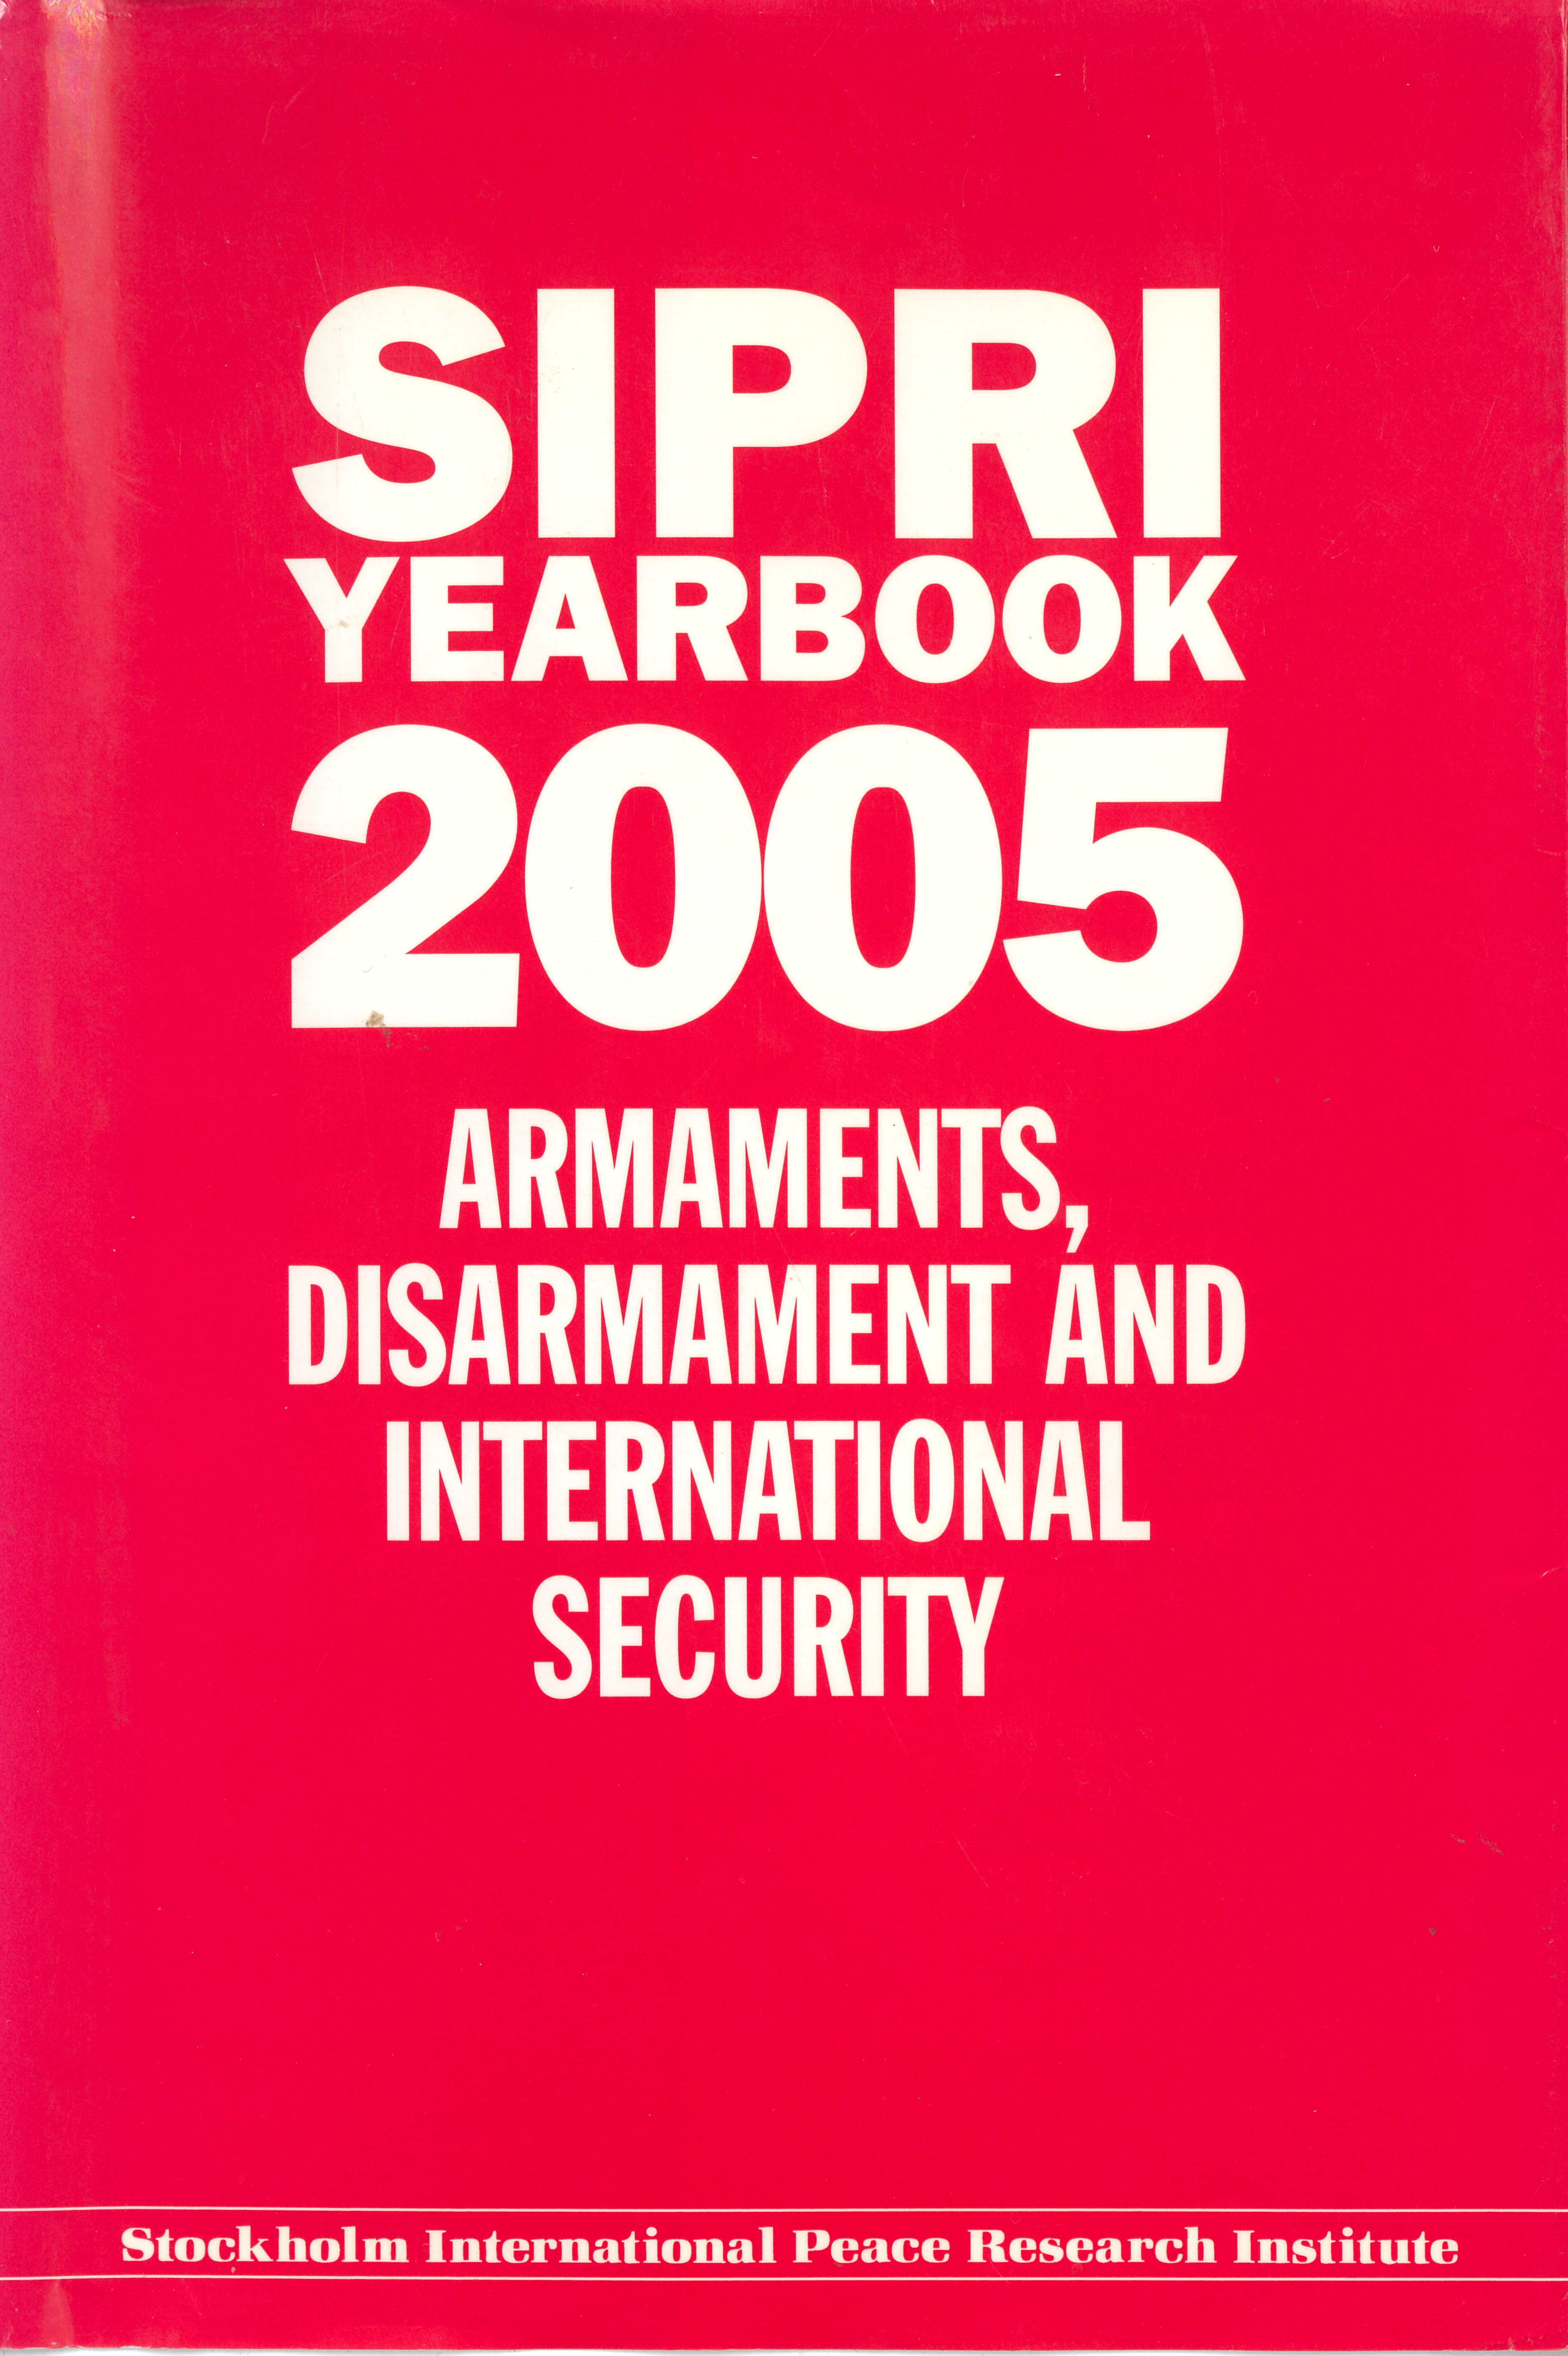 SIPRI yearbook 2005 cover